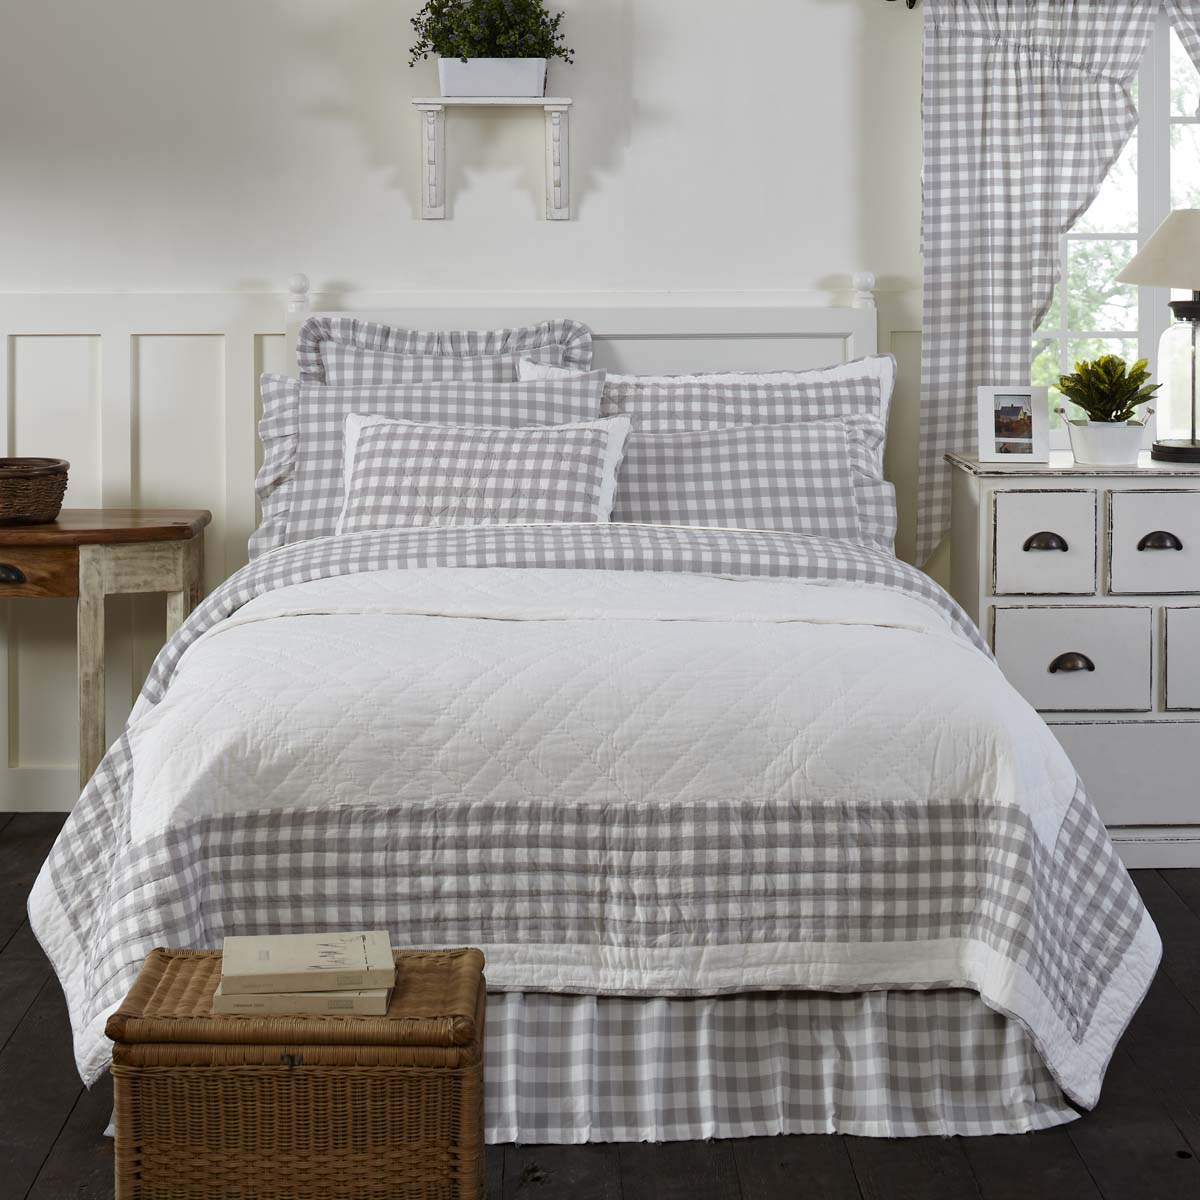 Vhc Brands Farmhouse Bedding Pillows Cotton Batting Annie Buffalo Grey Check Luxury King Quilt 120wx105l